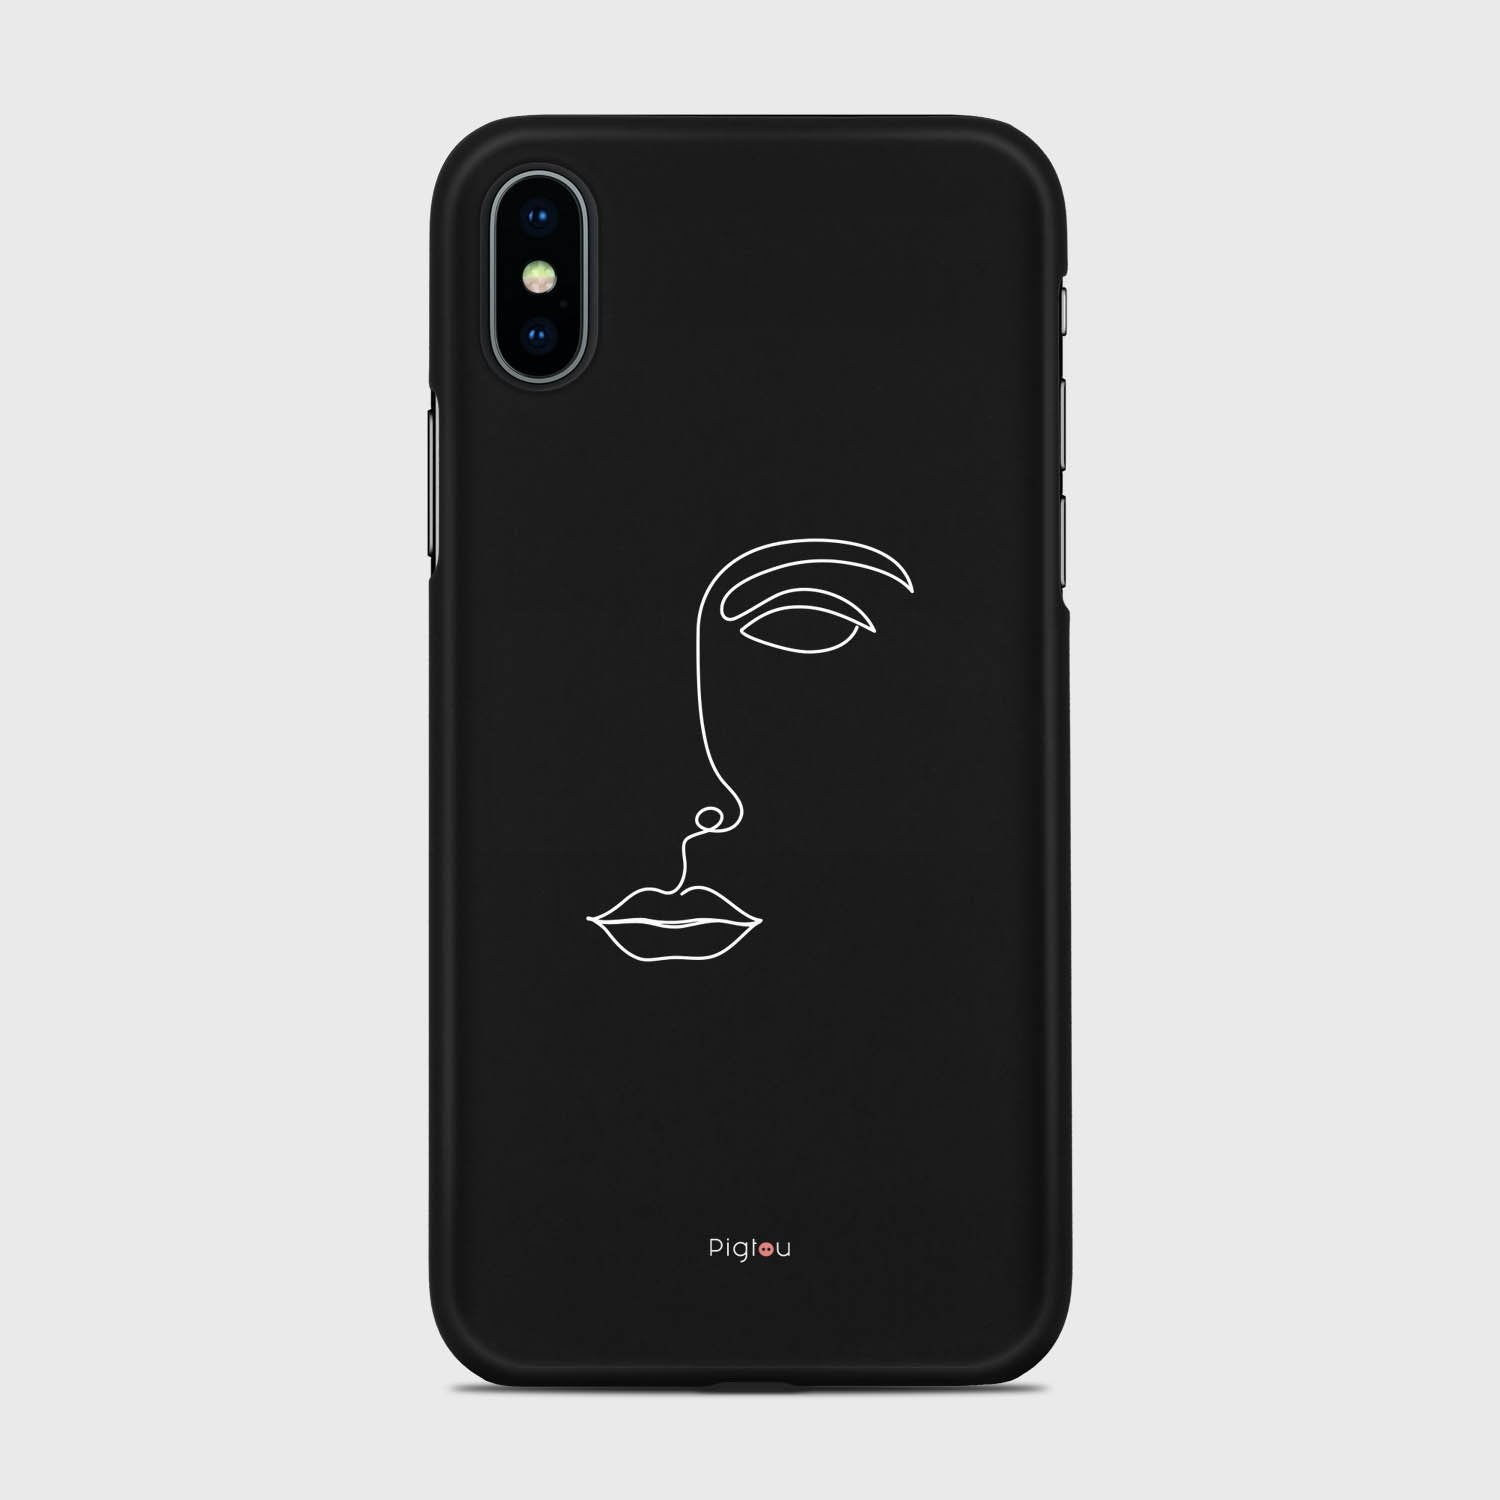 Silhouette De Visage Coque Iphone 11